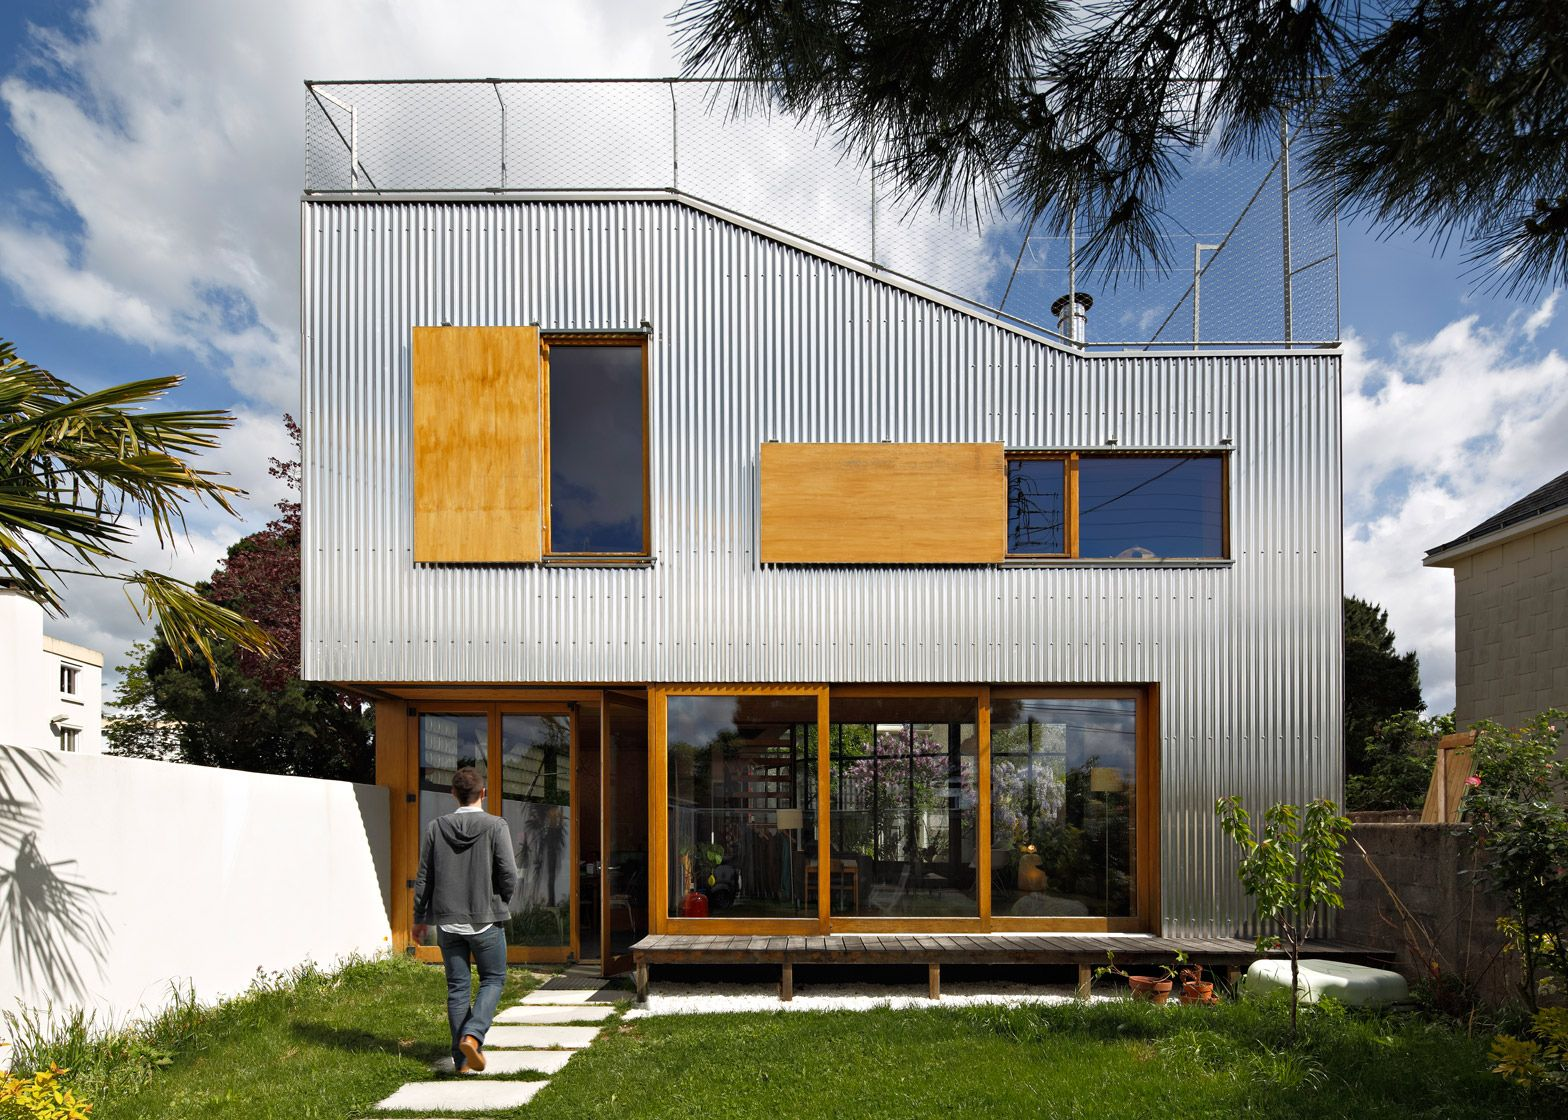 Cool French House Exterior Corrugated Aluminium Facade Roof Top Terrace Windows Composition Fence Wood Garden Architecture House Exterior Houses In France